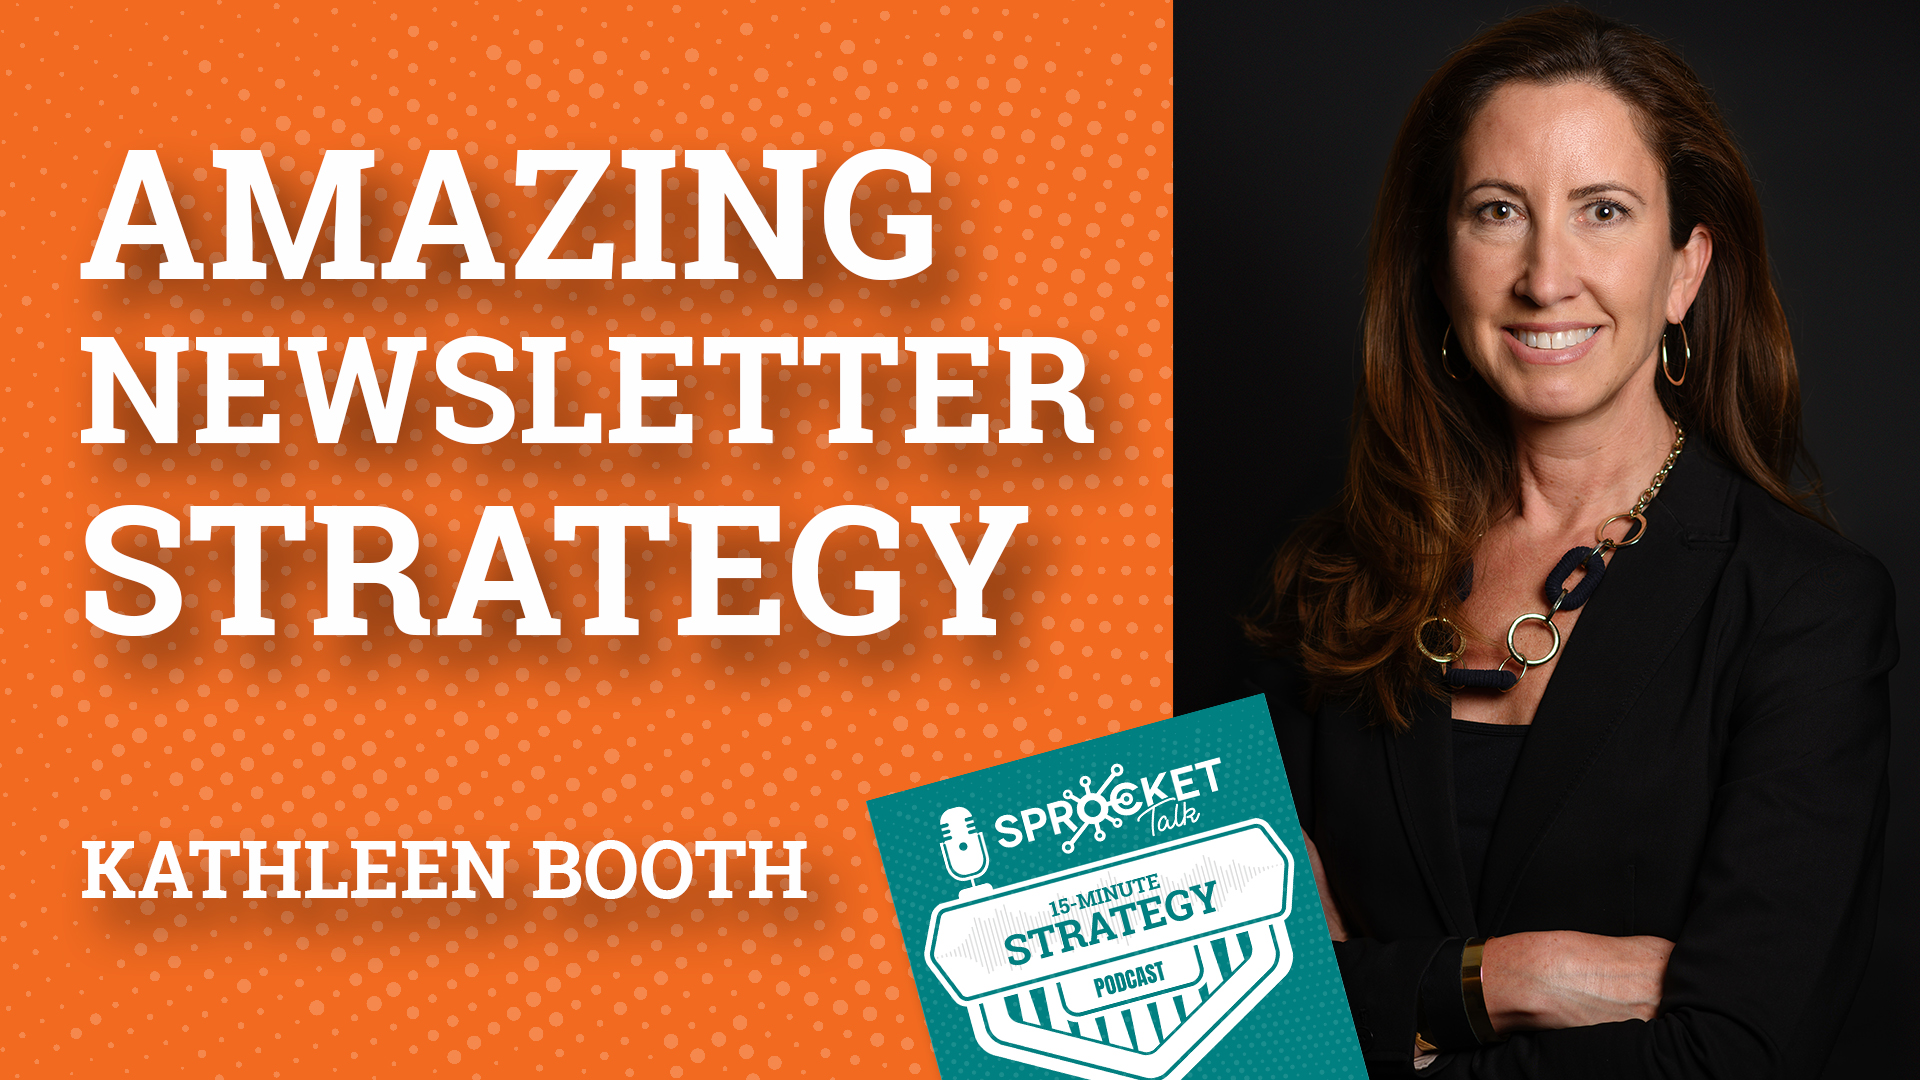 Kathleen Booth on Amazing Business Newsletter Strategies | 15-Minute Strategy Podcast